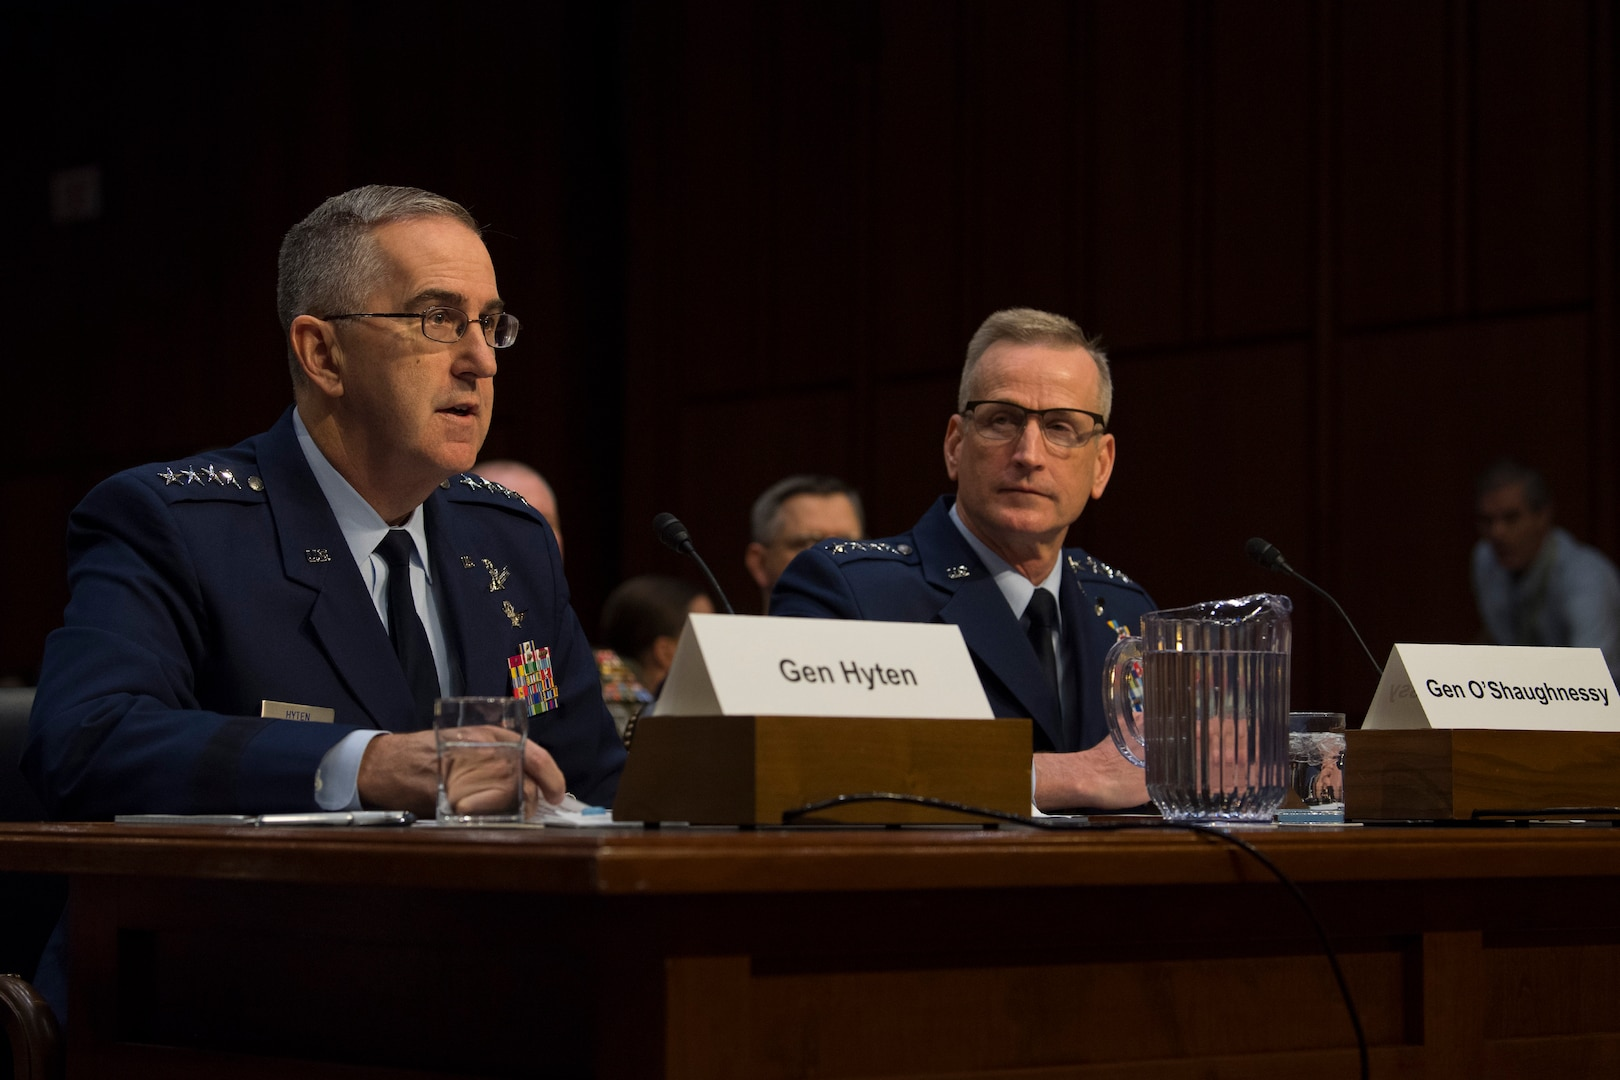 U.S. Strategic Command Commander Gen. John E. Hyten, and U.S. Northern Command and North American Aerospace Defense Command Commander Gen. Terrence J. O'Shaughnessy testify before the U.S. Senate Committee on Armed Services  on United States Strategic Command and United States Northern Command in review of the Defense Authorization Request for Fiscal Year 2020 and the Future Years Defense Program at the Hart Senate Building in Washington, D.C., Feb. 26, 2019.